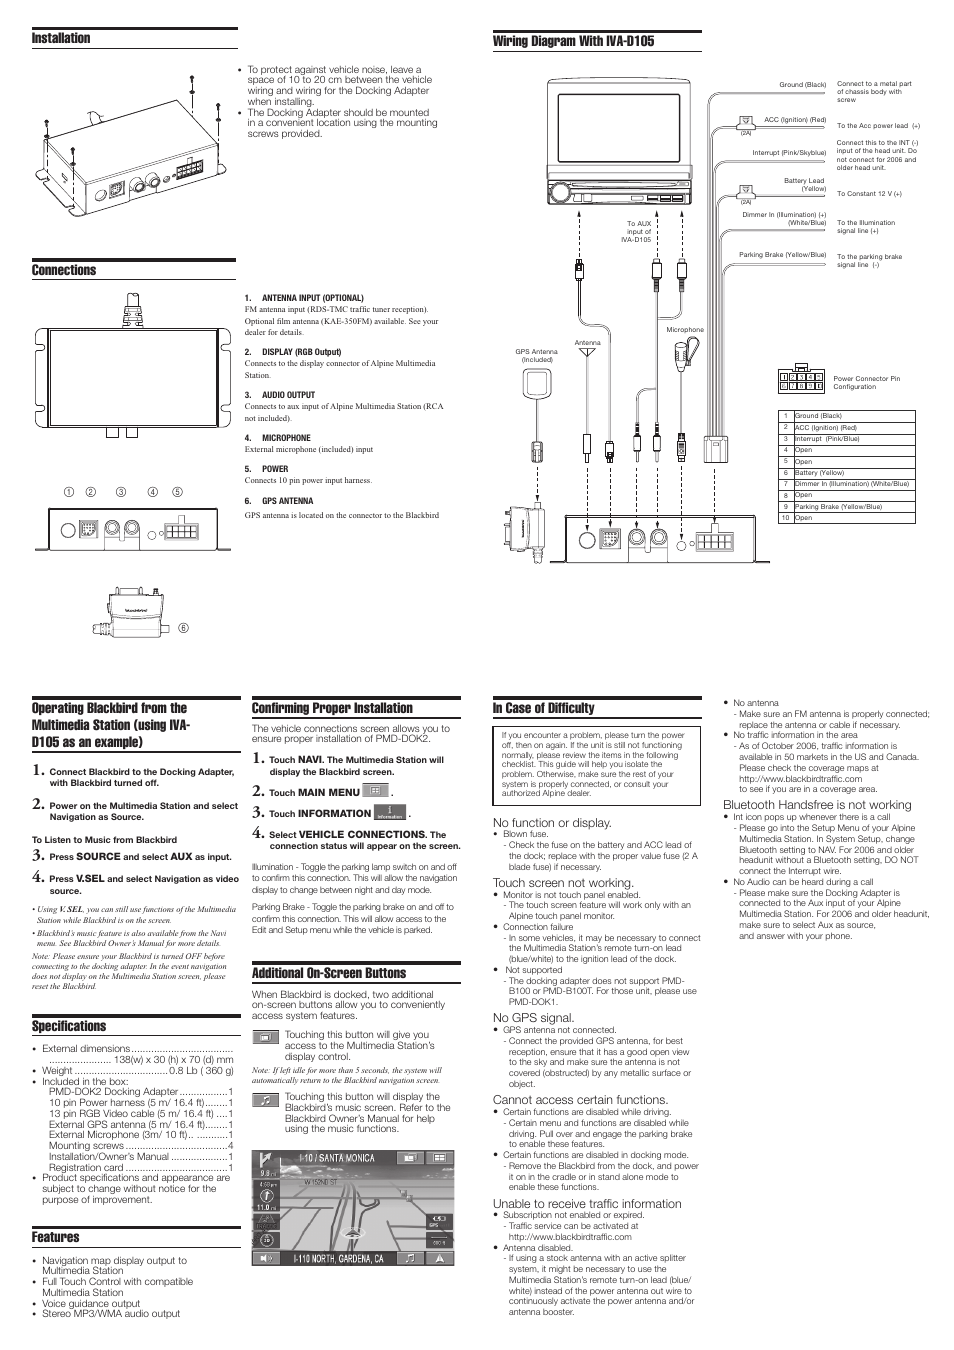 alpine blackbird docking adapter pmd dok2 page2 connections, wiring diagram with iva d105, specifications alpine alpine iva-d105 wiring diagram at soozxer.org